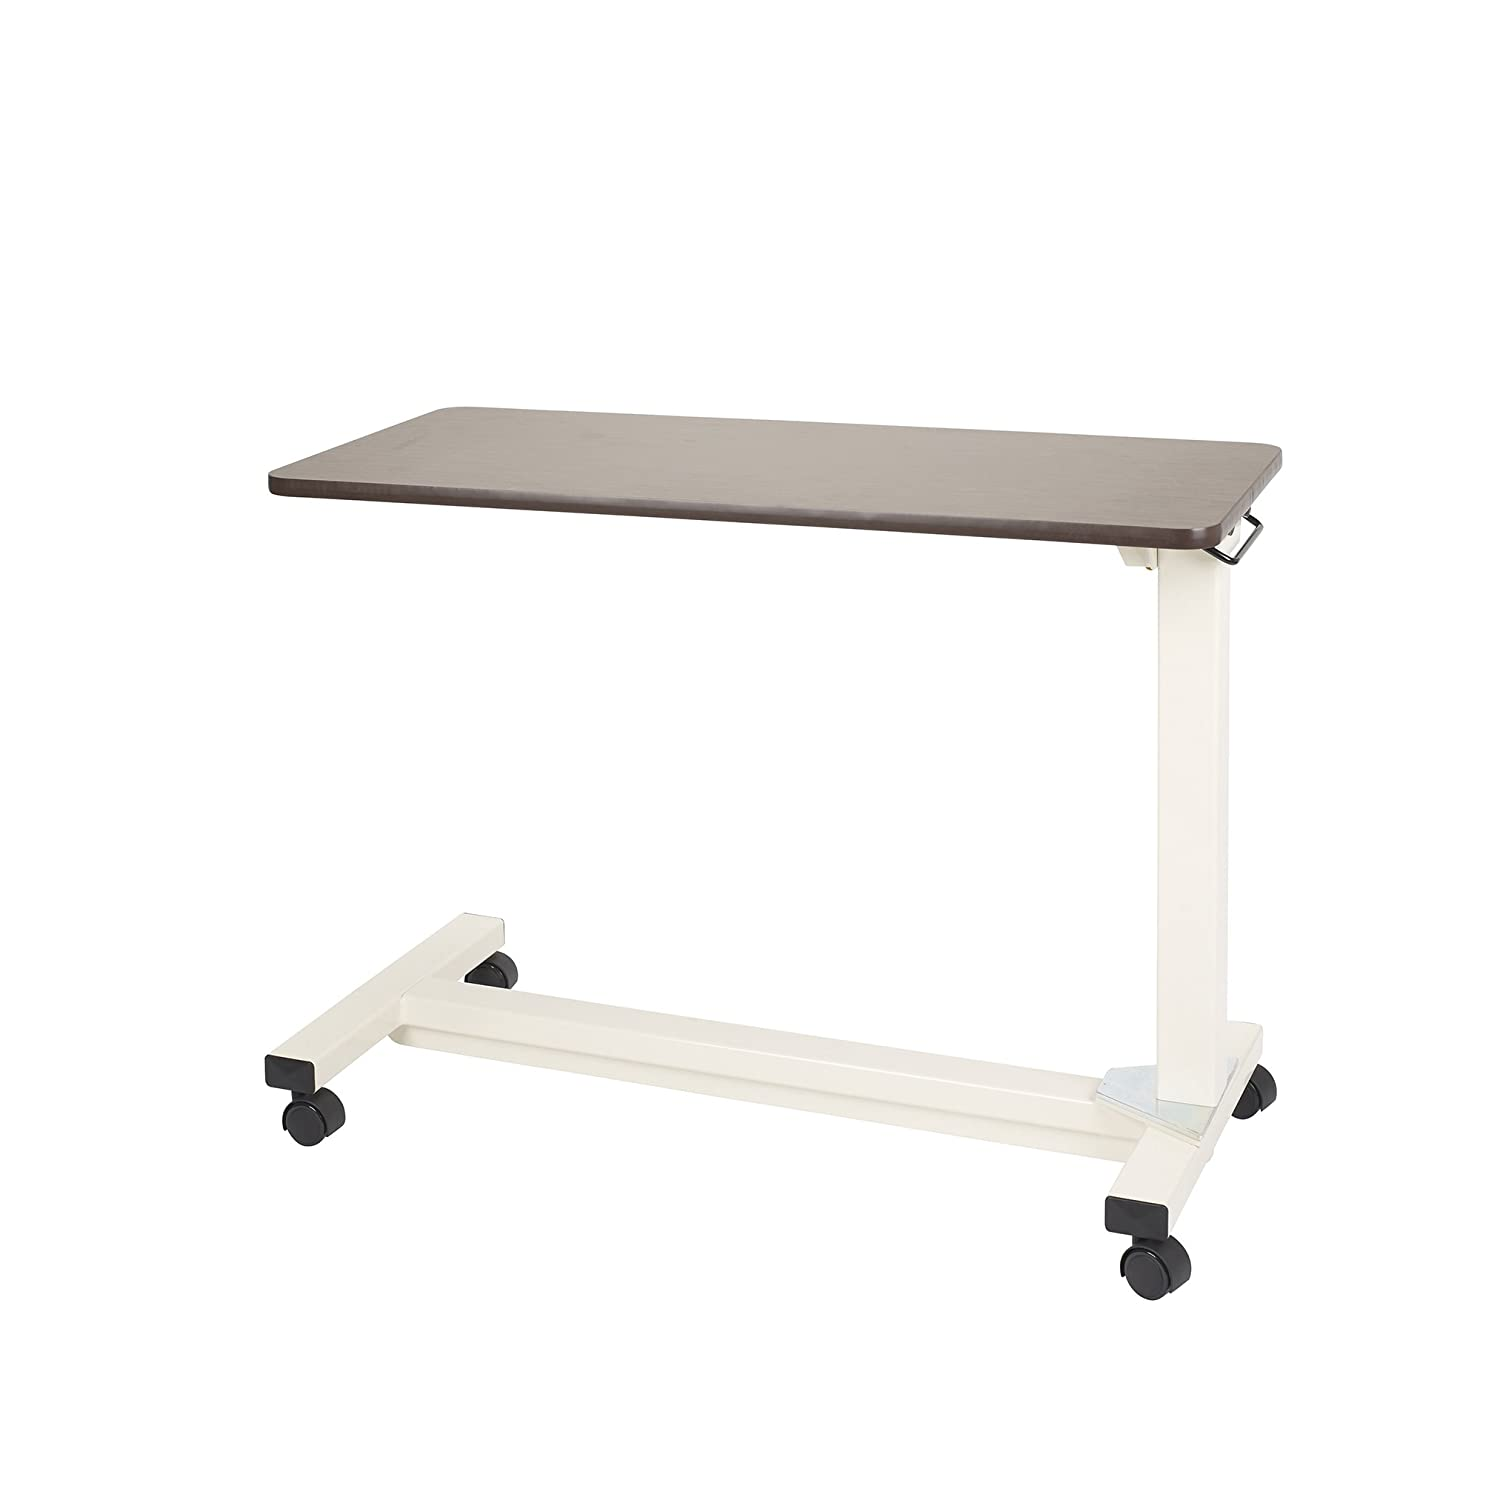 Split top overbed table - Drive Medical Bariatric Heavy Duty Overbed Table Oak